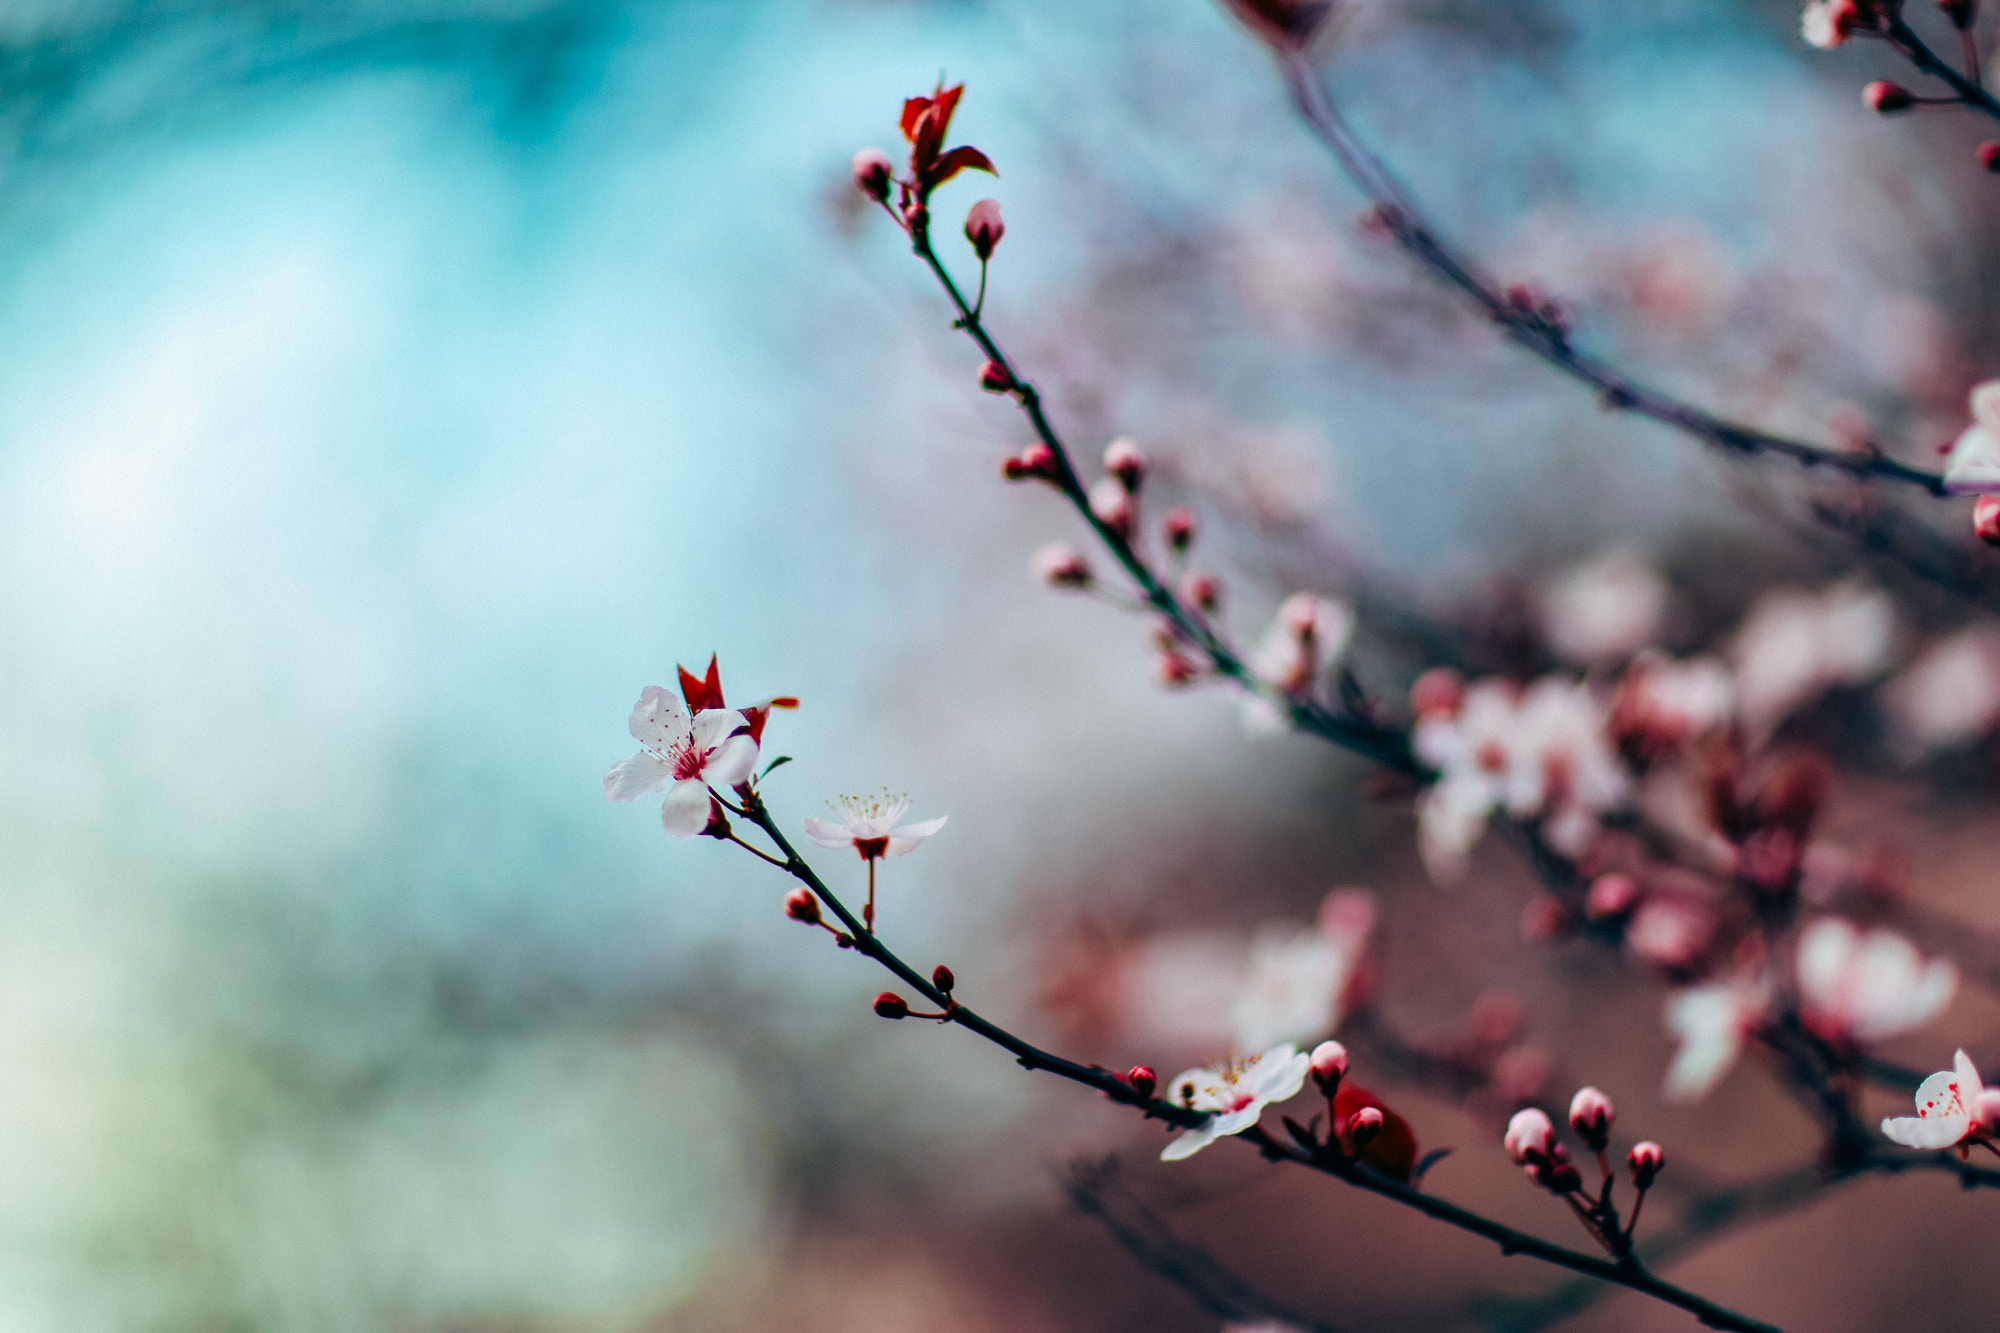 A branch of delicate, pink cherry blossoms